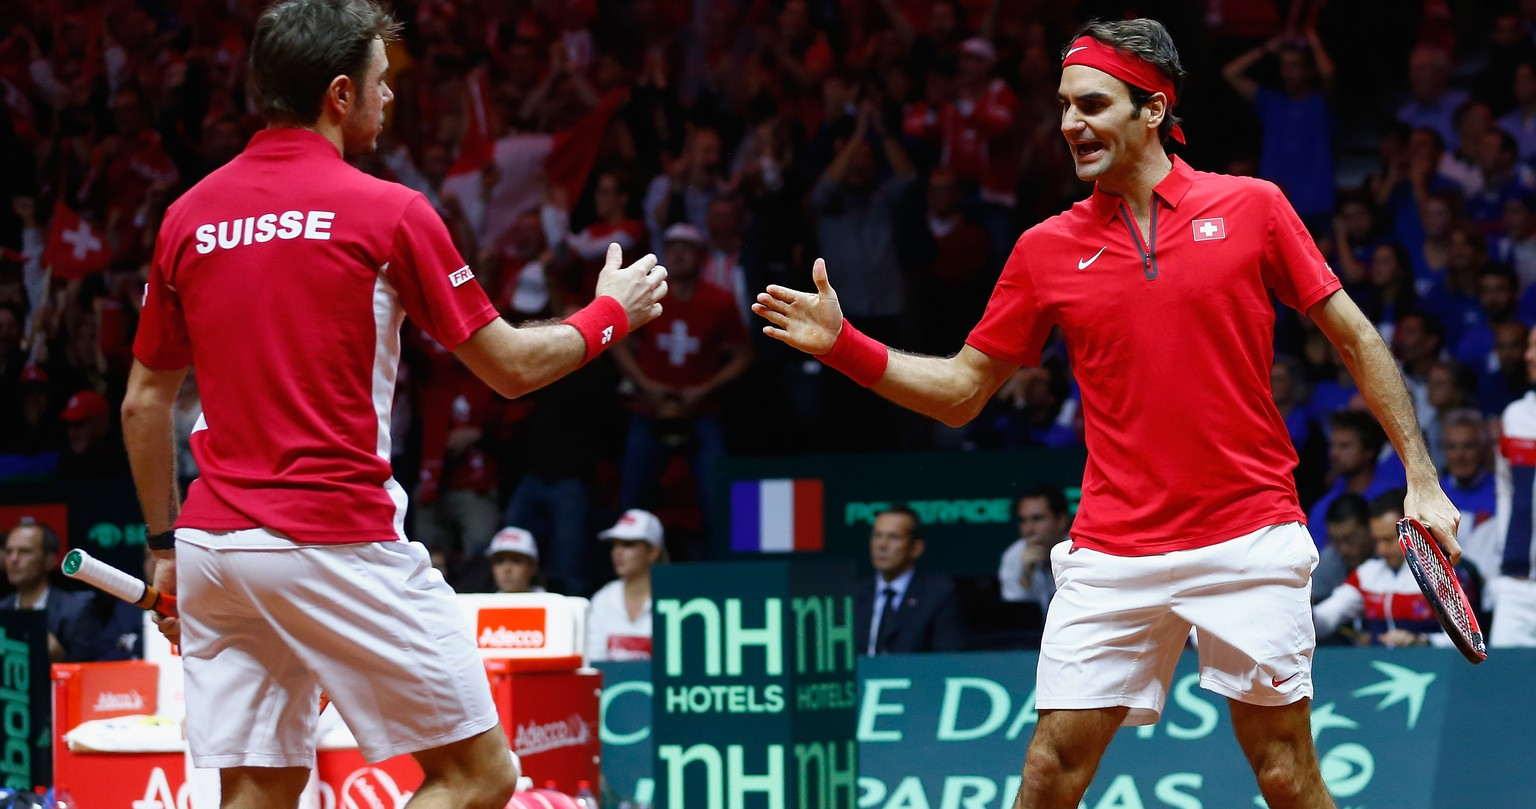 LILLE, FRANCE - NOVEMBER 22:  Roger Federer of Switzerland and Stanislas Wawrinka of Switzerland celebrate a point against Richard Gasquet of France and Julien Benneteau of France in the doubles during day two of the Davis Cup Tennis Final between France and Switzerland at the Stade Pierre Mauroy on November 22, 2014 in Lille, France.  (Photo by Julian Finney/Getty Images)